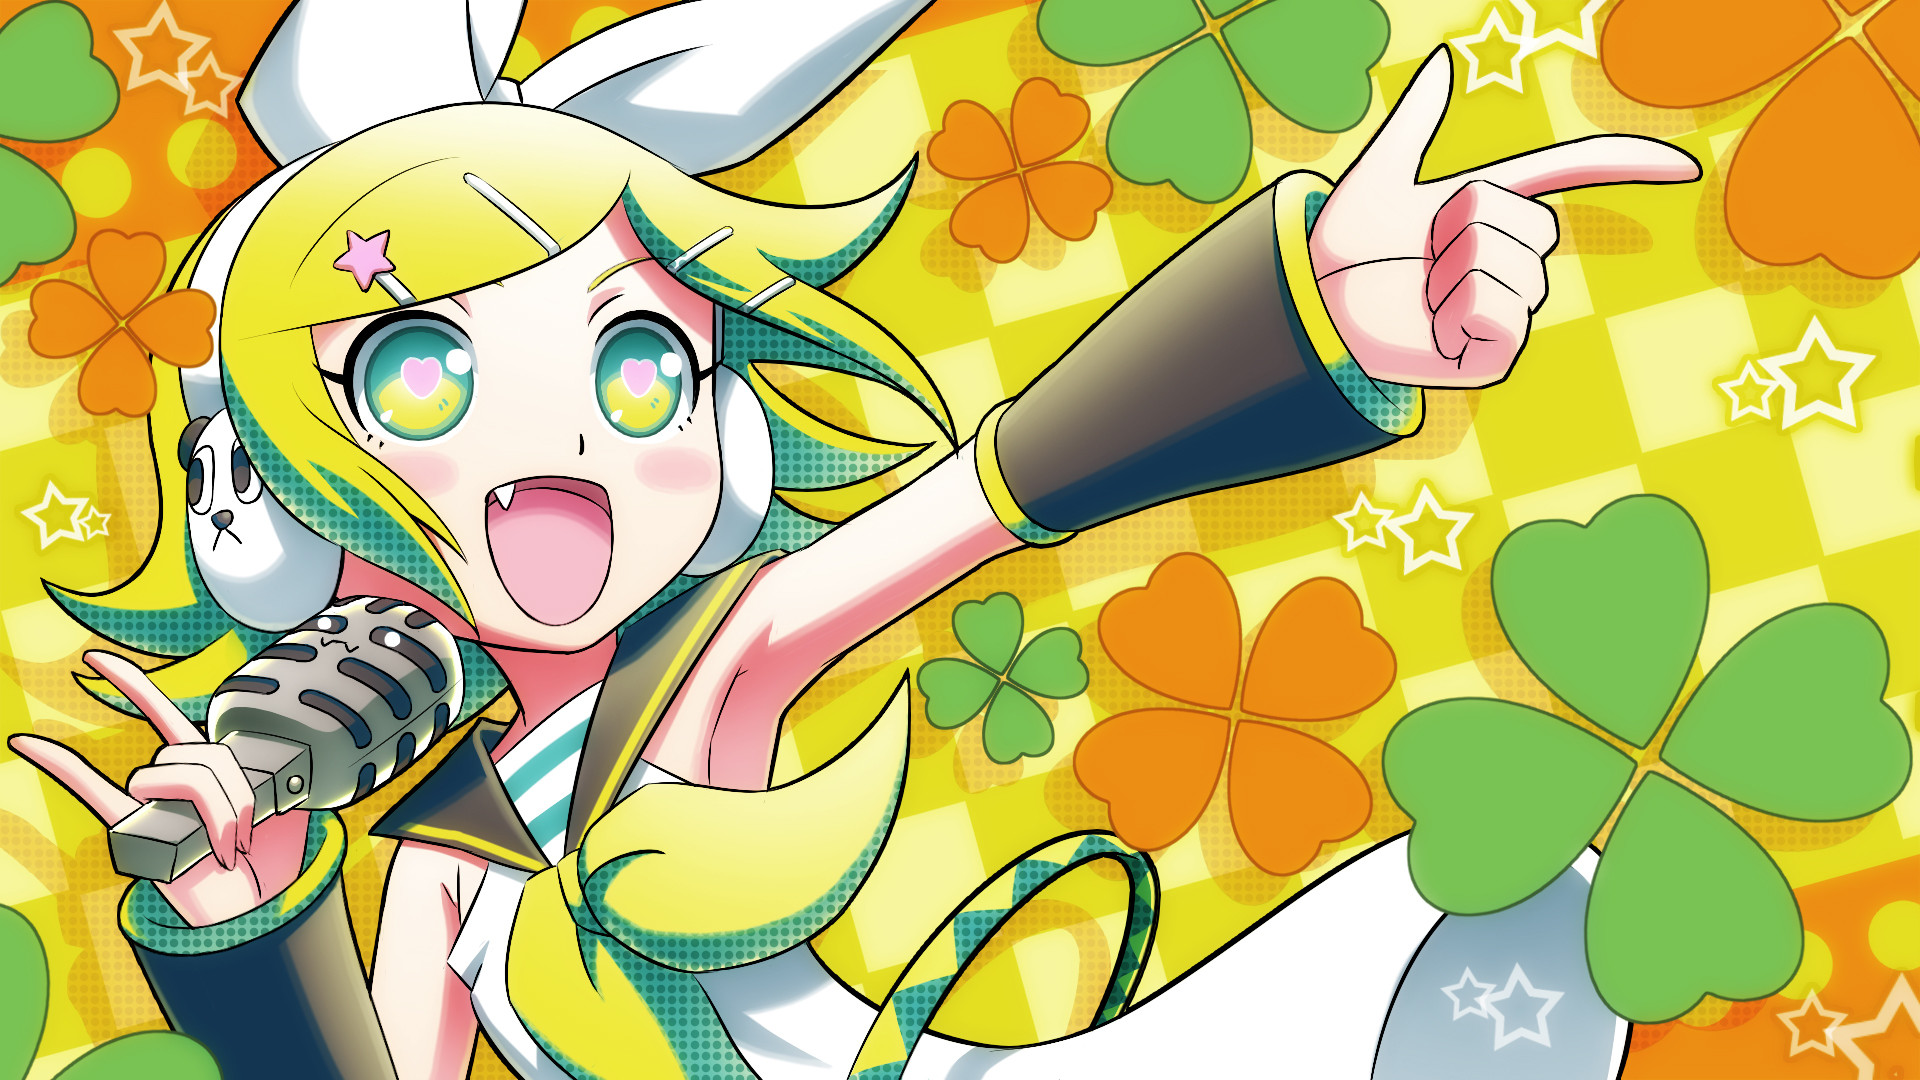 Res: 1920x1080, View Fullsize Kagamine Rin Image